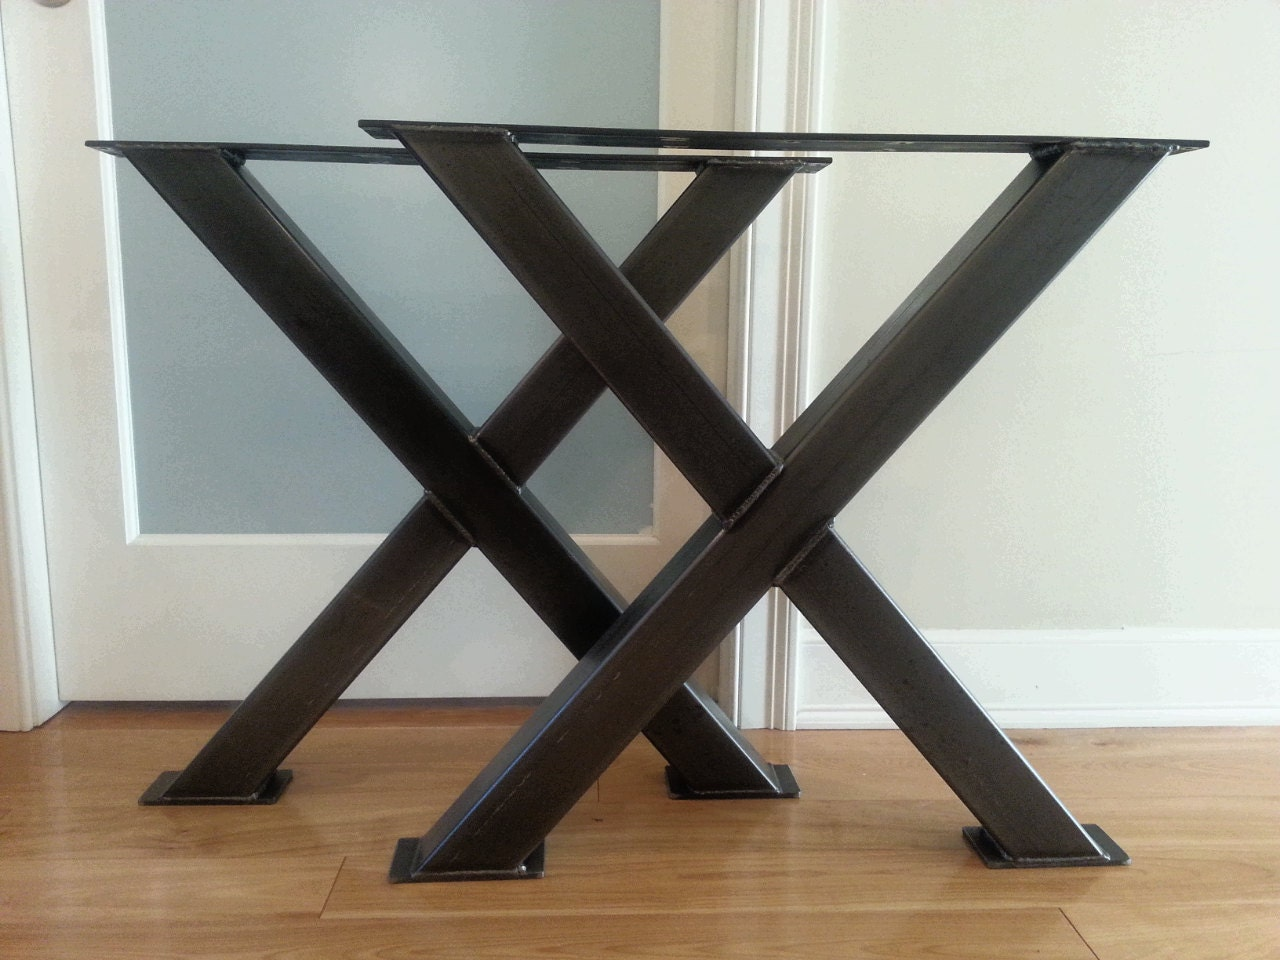 x metal table legs 3 steel table legs iron table rh etsy com metal table legs lowes metal table legs lowes